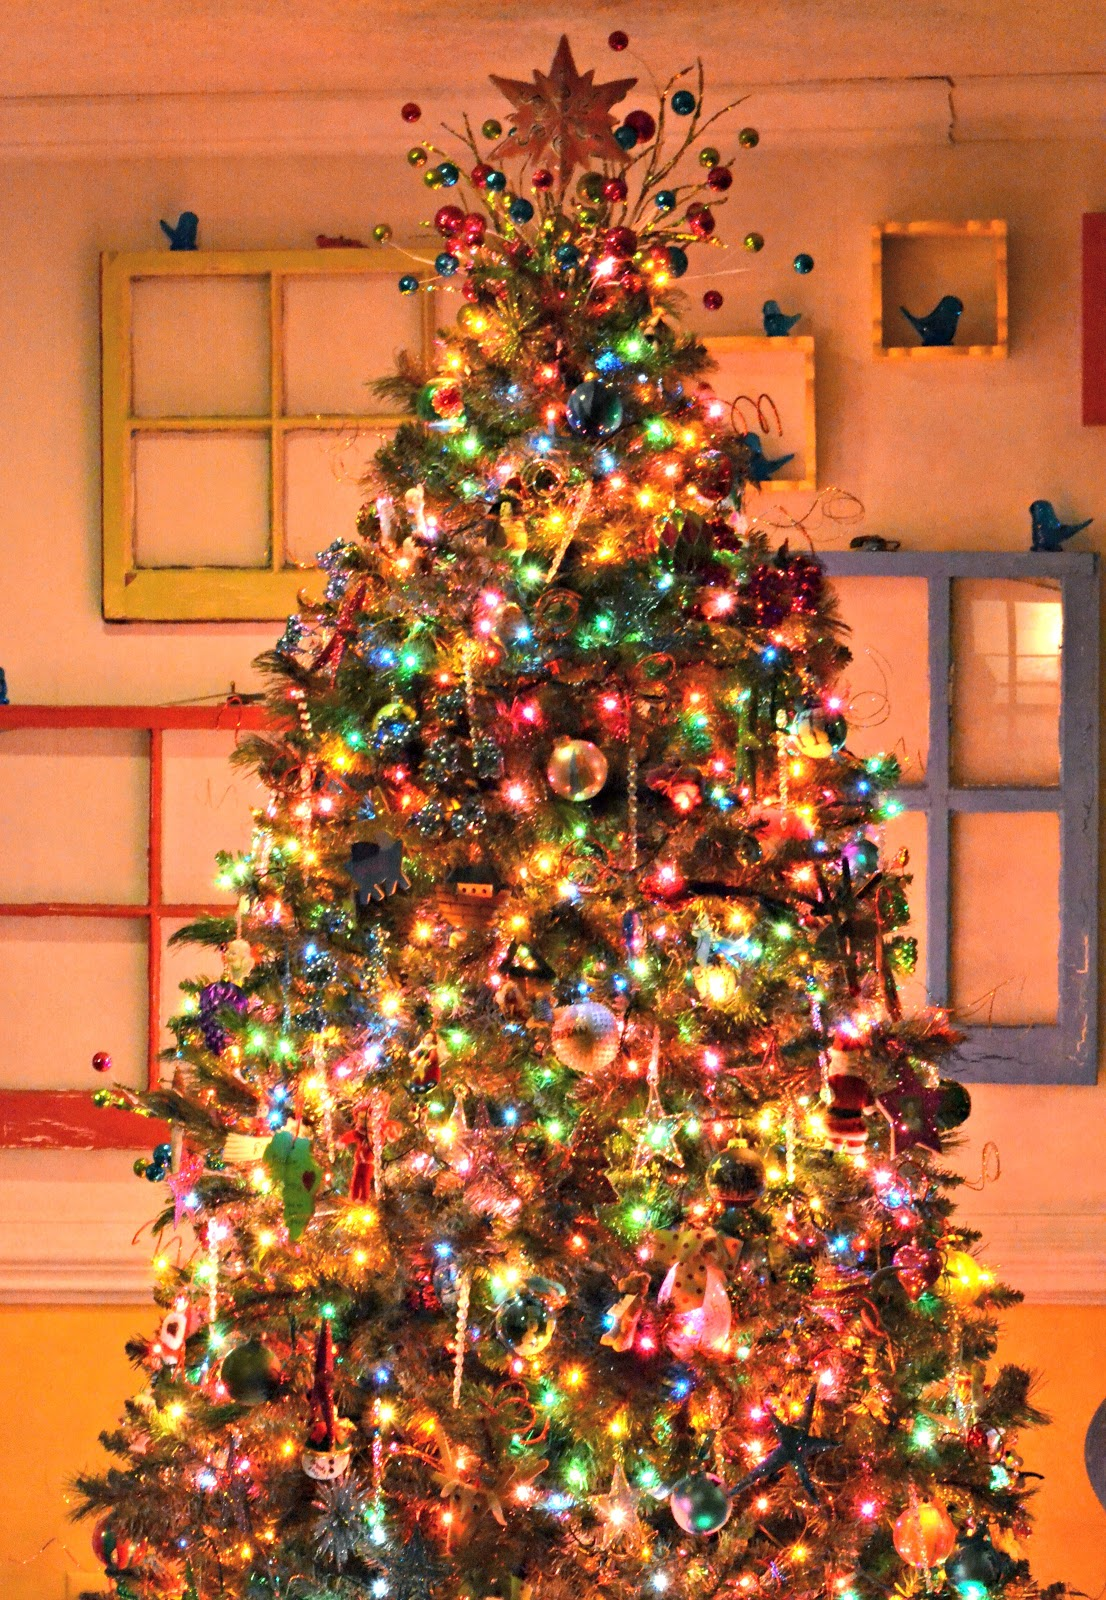 Decorating A Christmas Tree With